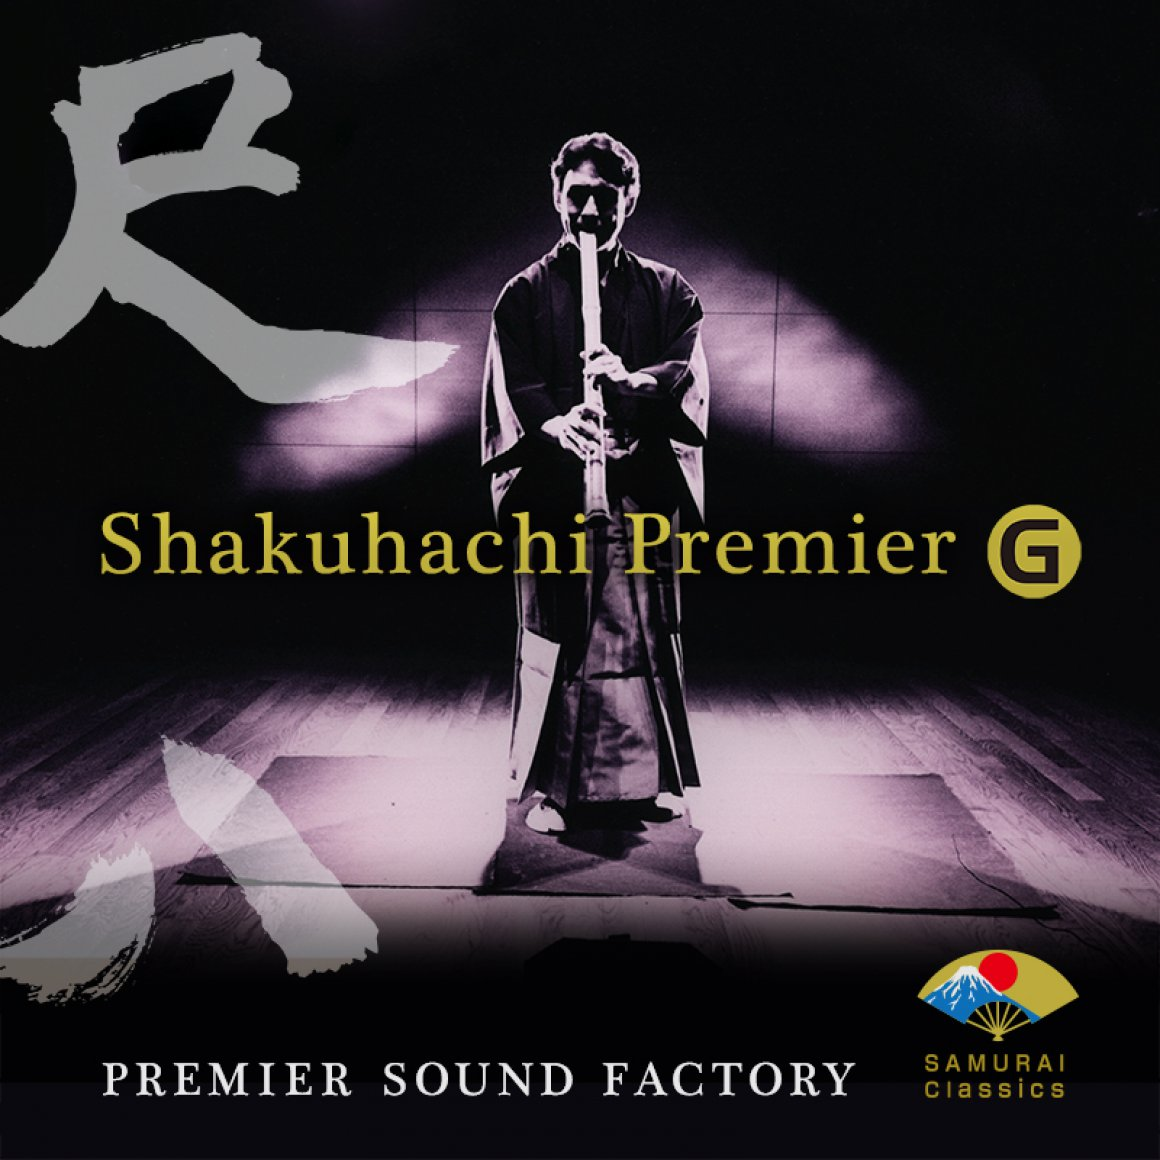 PREMIER SOUND FACTORY | 96kHz 24bit Hi-res software virtual